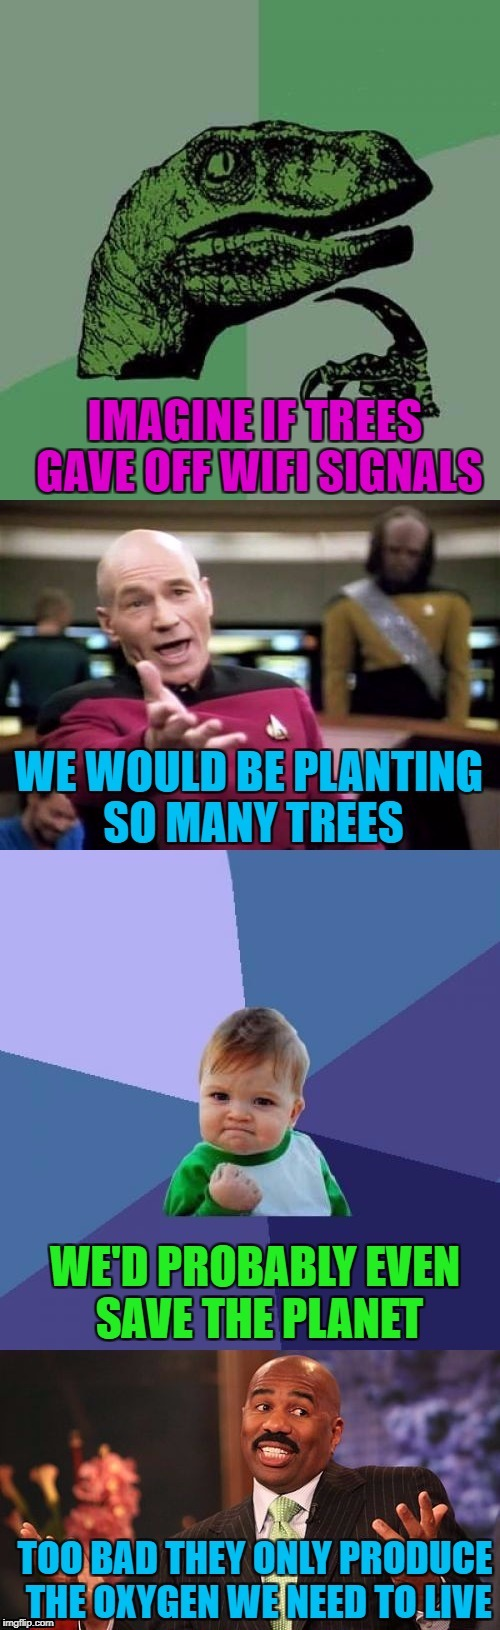 "And they say humans are ""intelligent""! Meme Wars...A Pipe_Picasso Event  